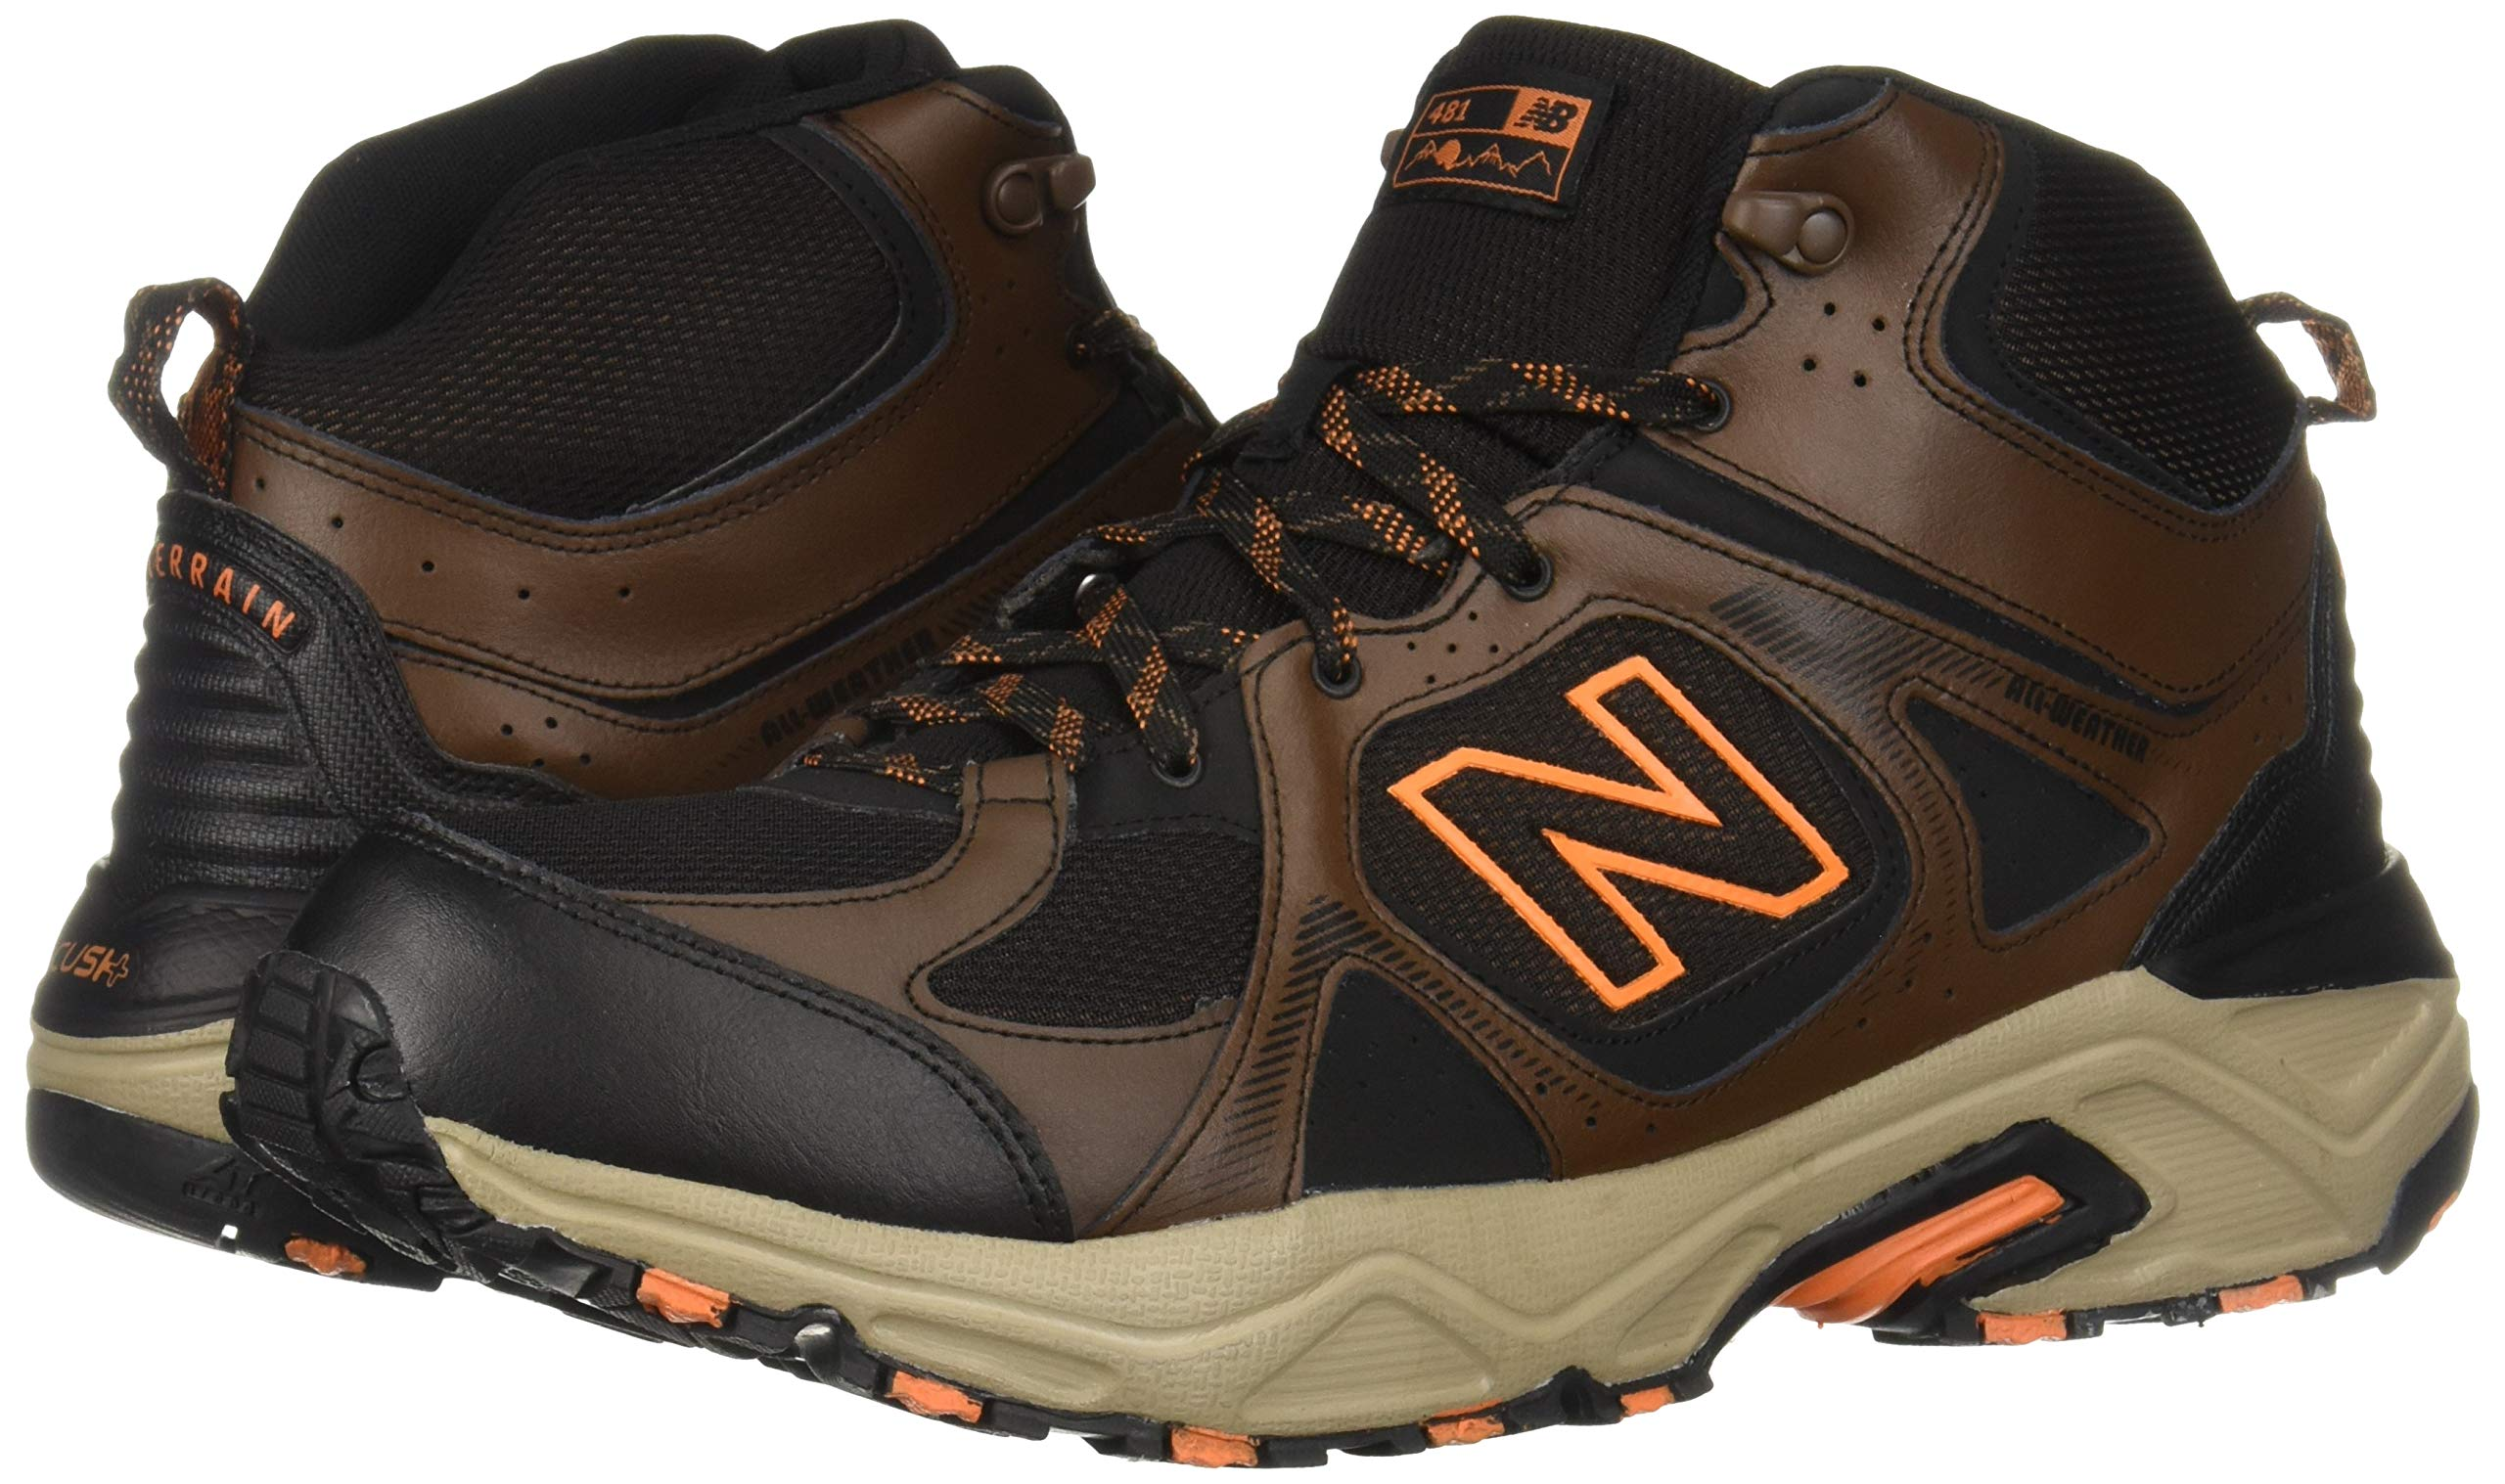 New Balance Men's 481 V3 Cushioning Trail Running Shoe Adrift/Black/Mercury 9 D US by New Balance (Image #6)